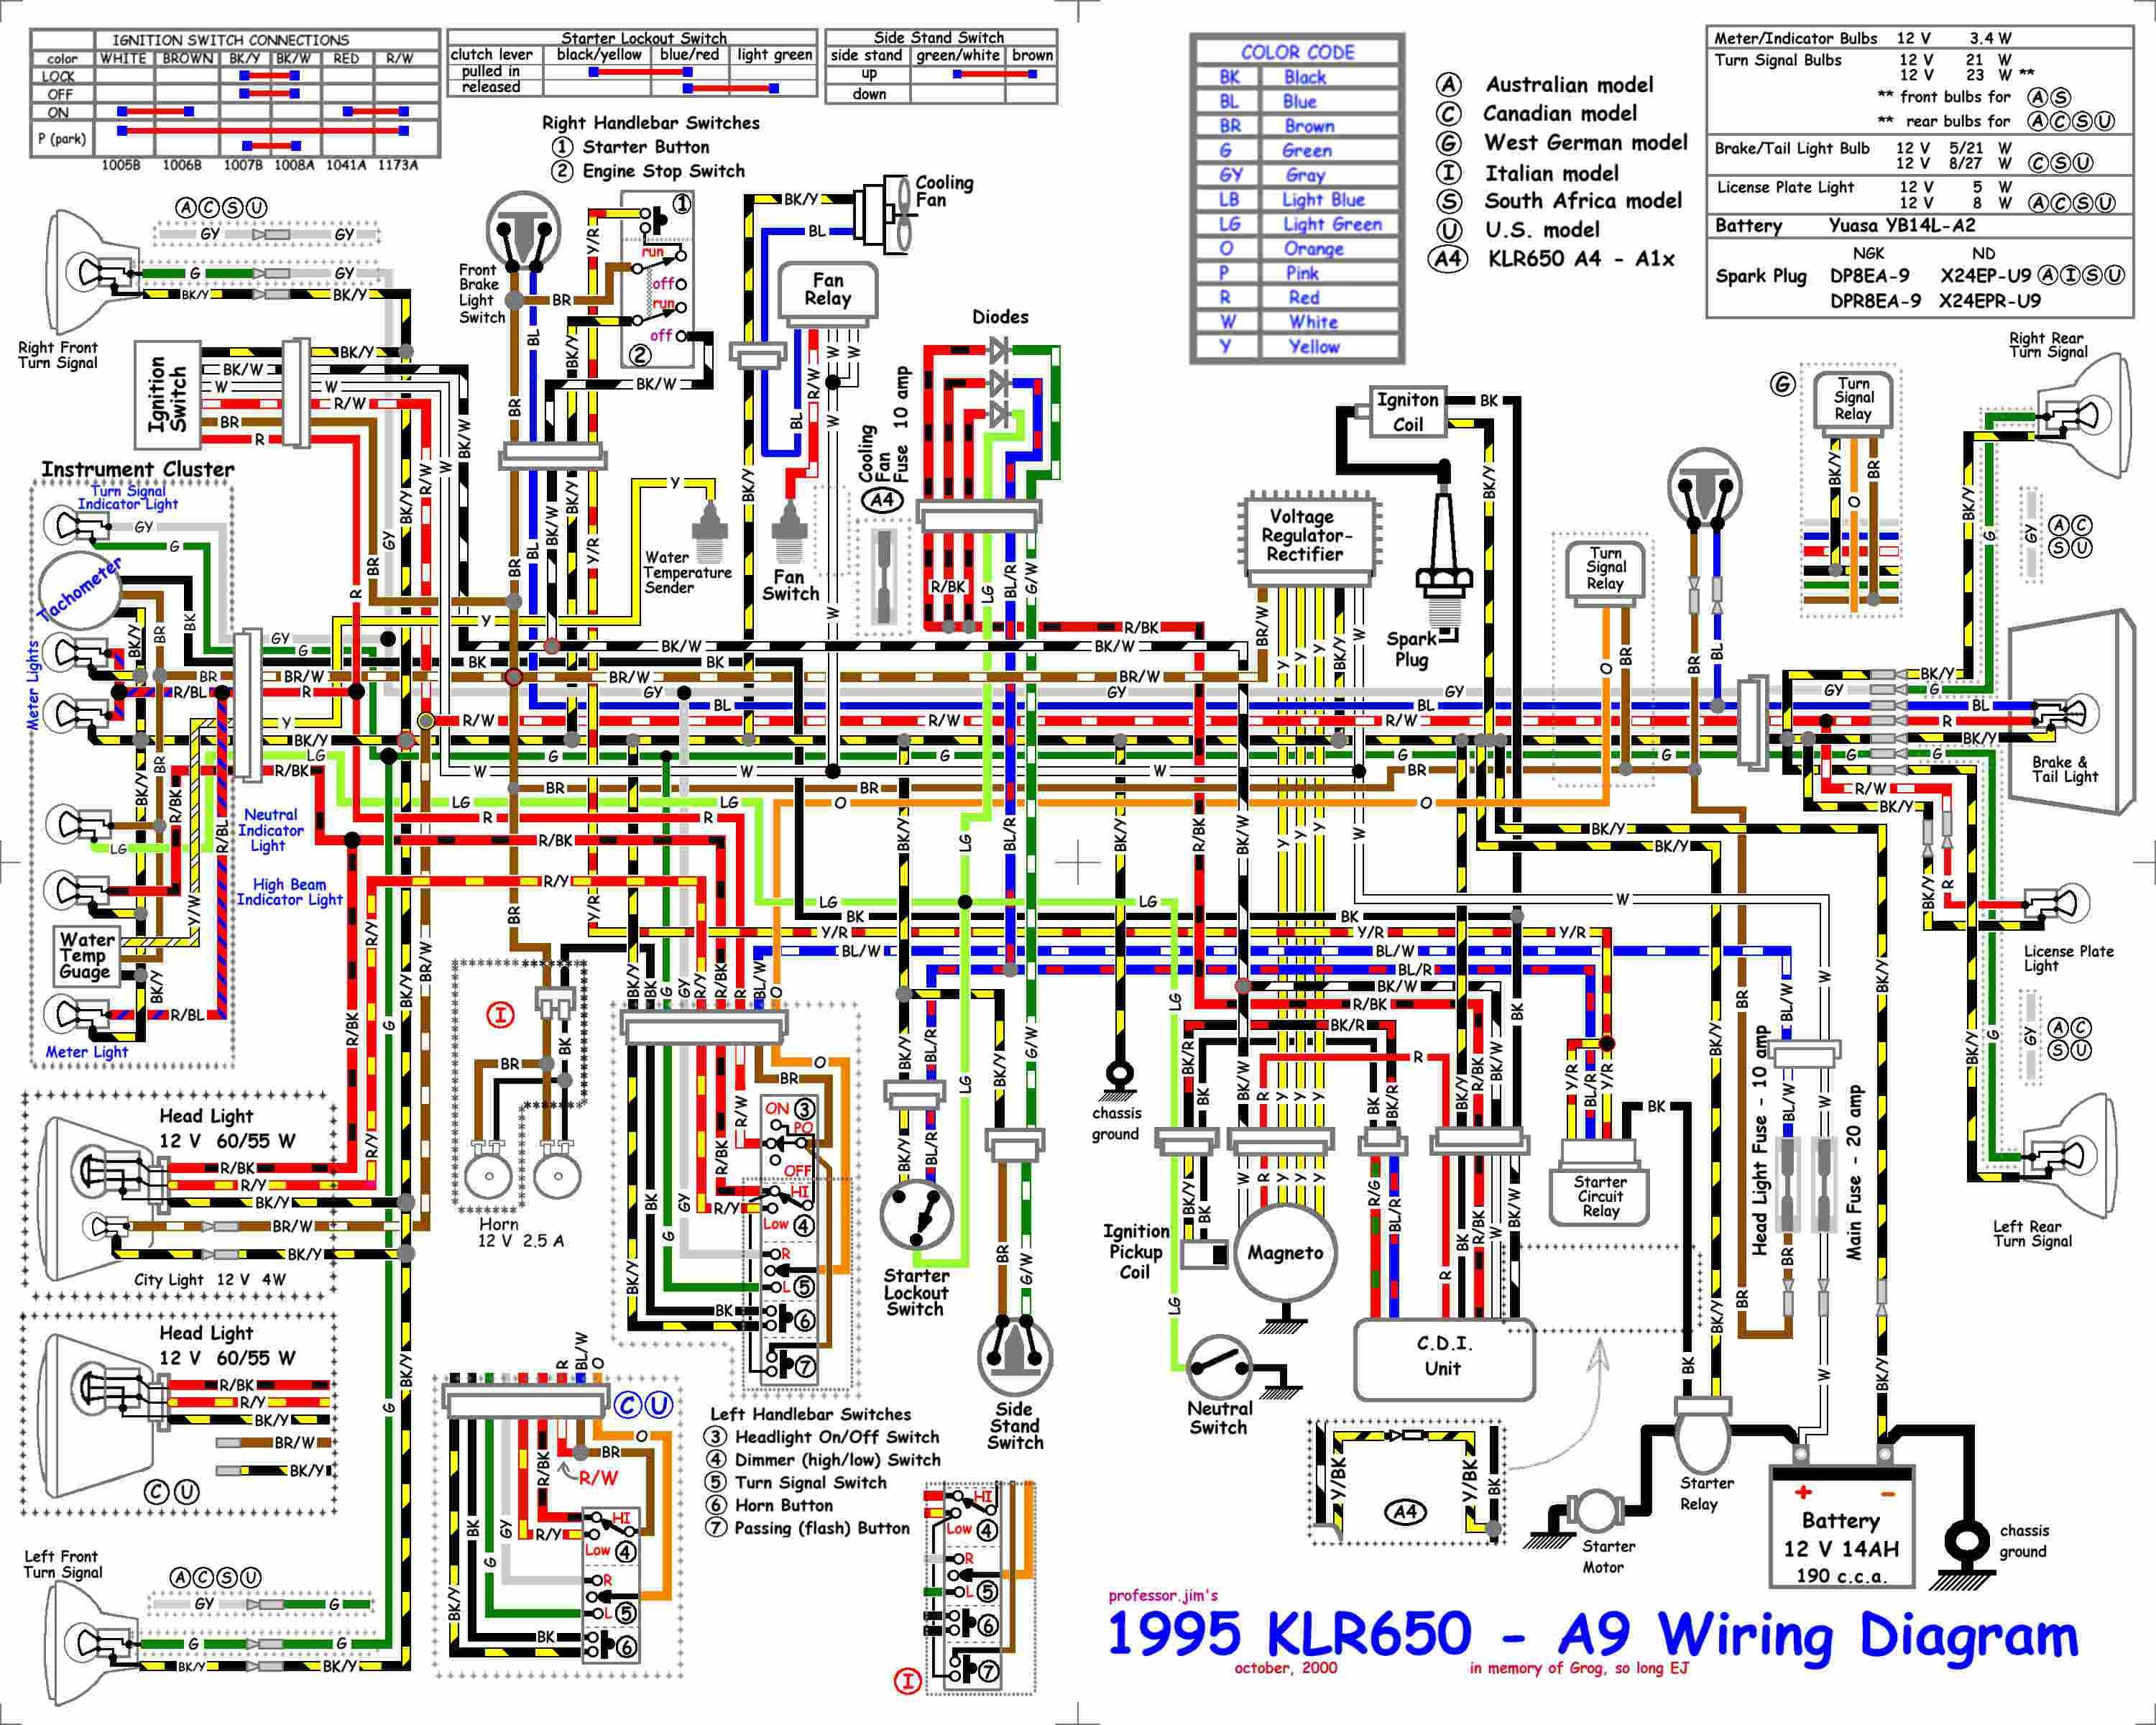 99 toyota Camry Engine Diagram Stunning 1995 toyota Camry Wiring Diagram Everything You Of 99 toyota Camry Engine Diagram